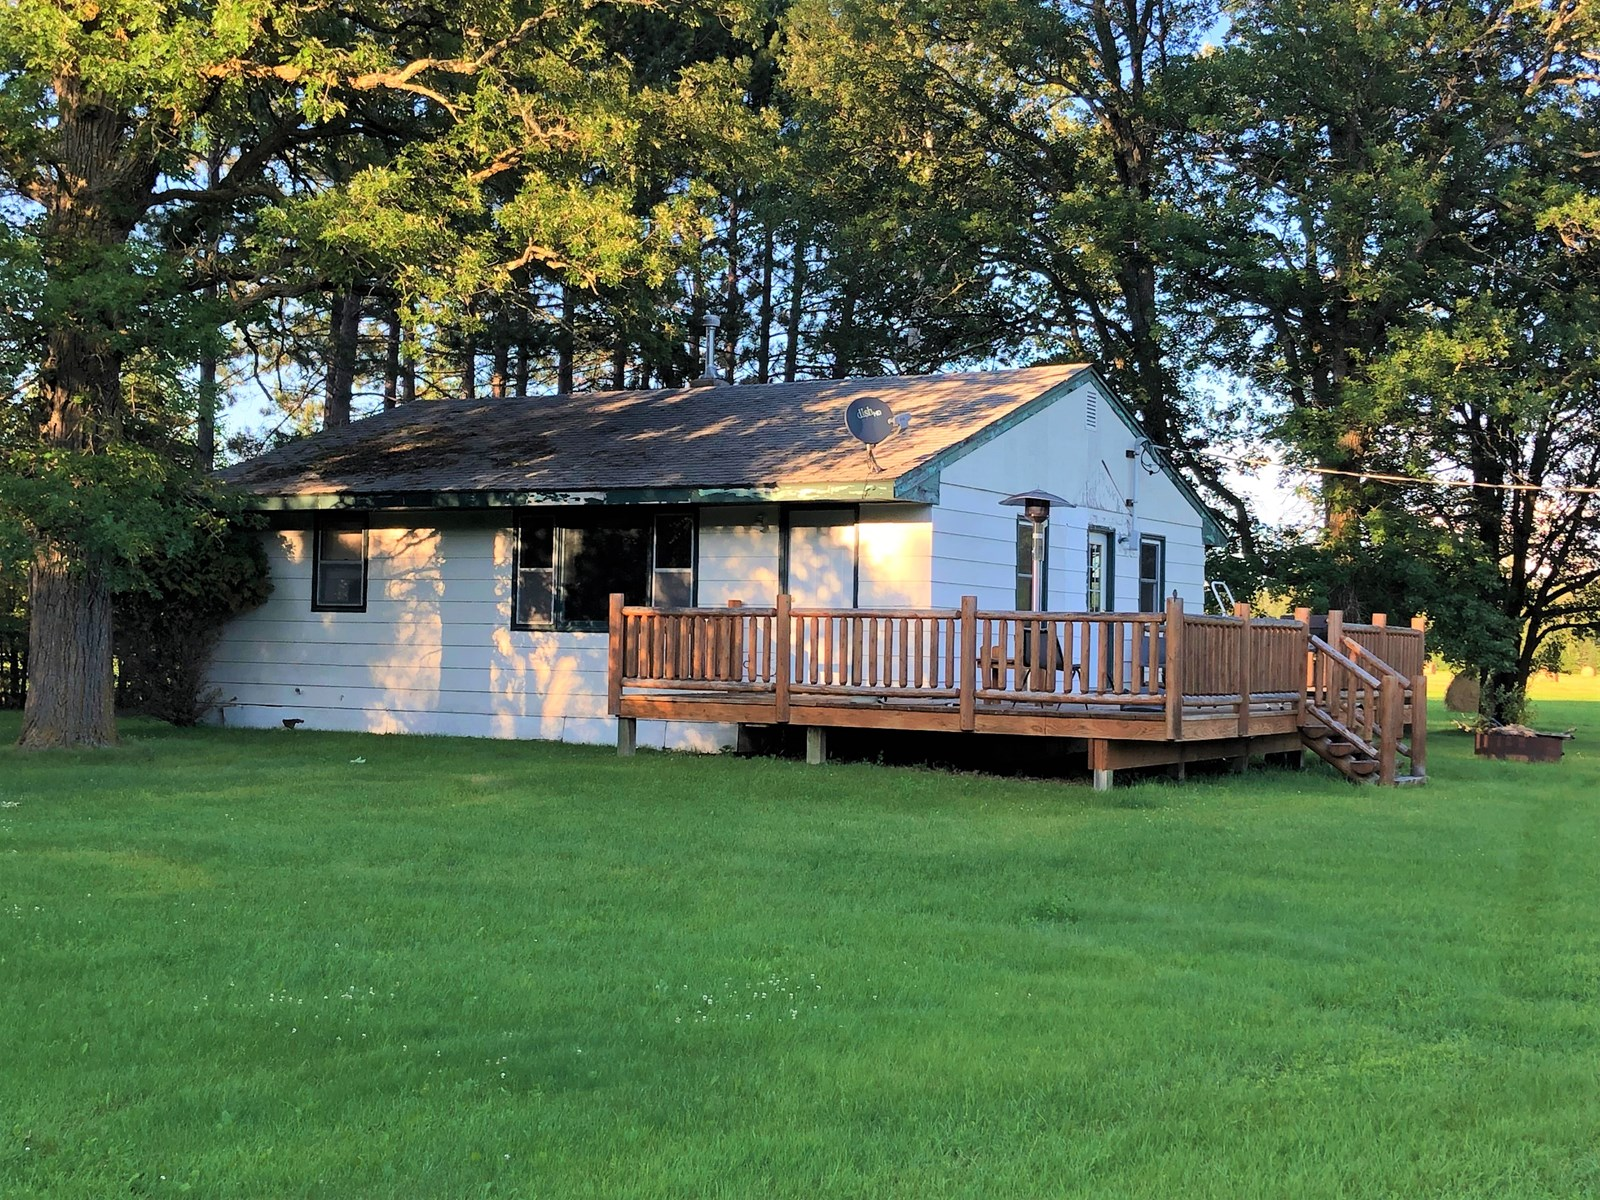 Cabin for sale in Northern Mn, Great area!